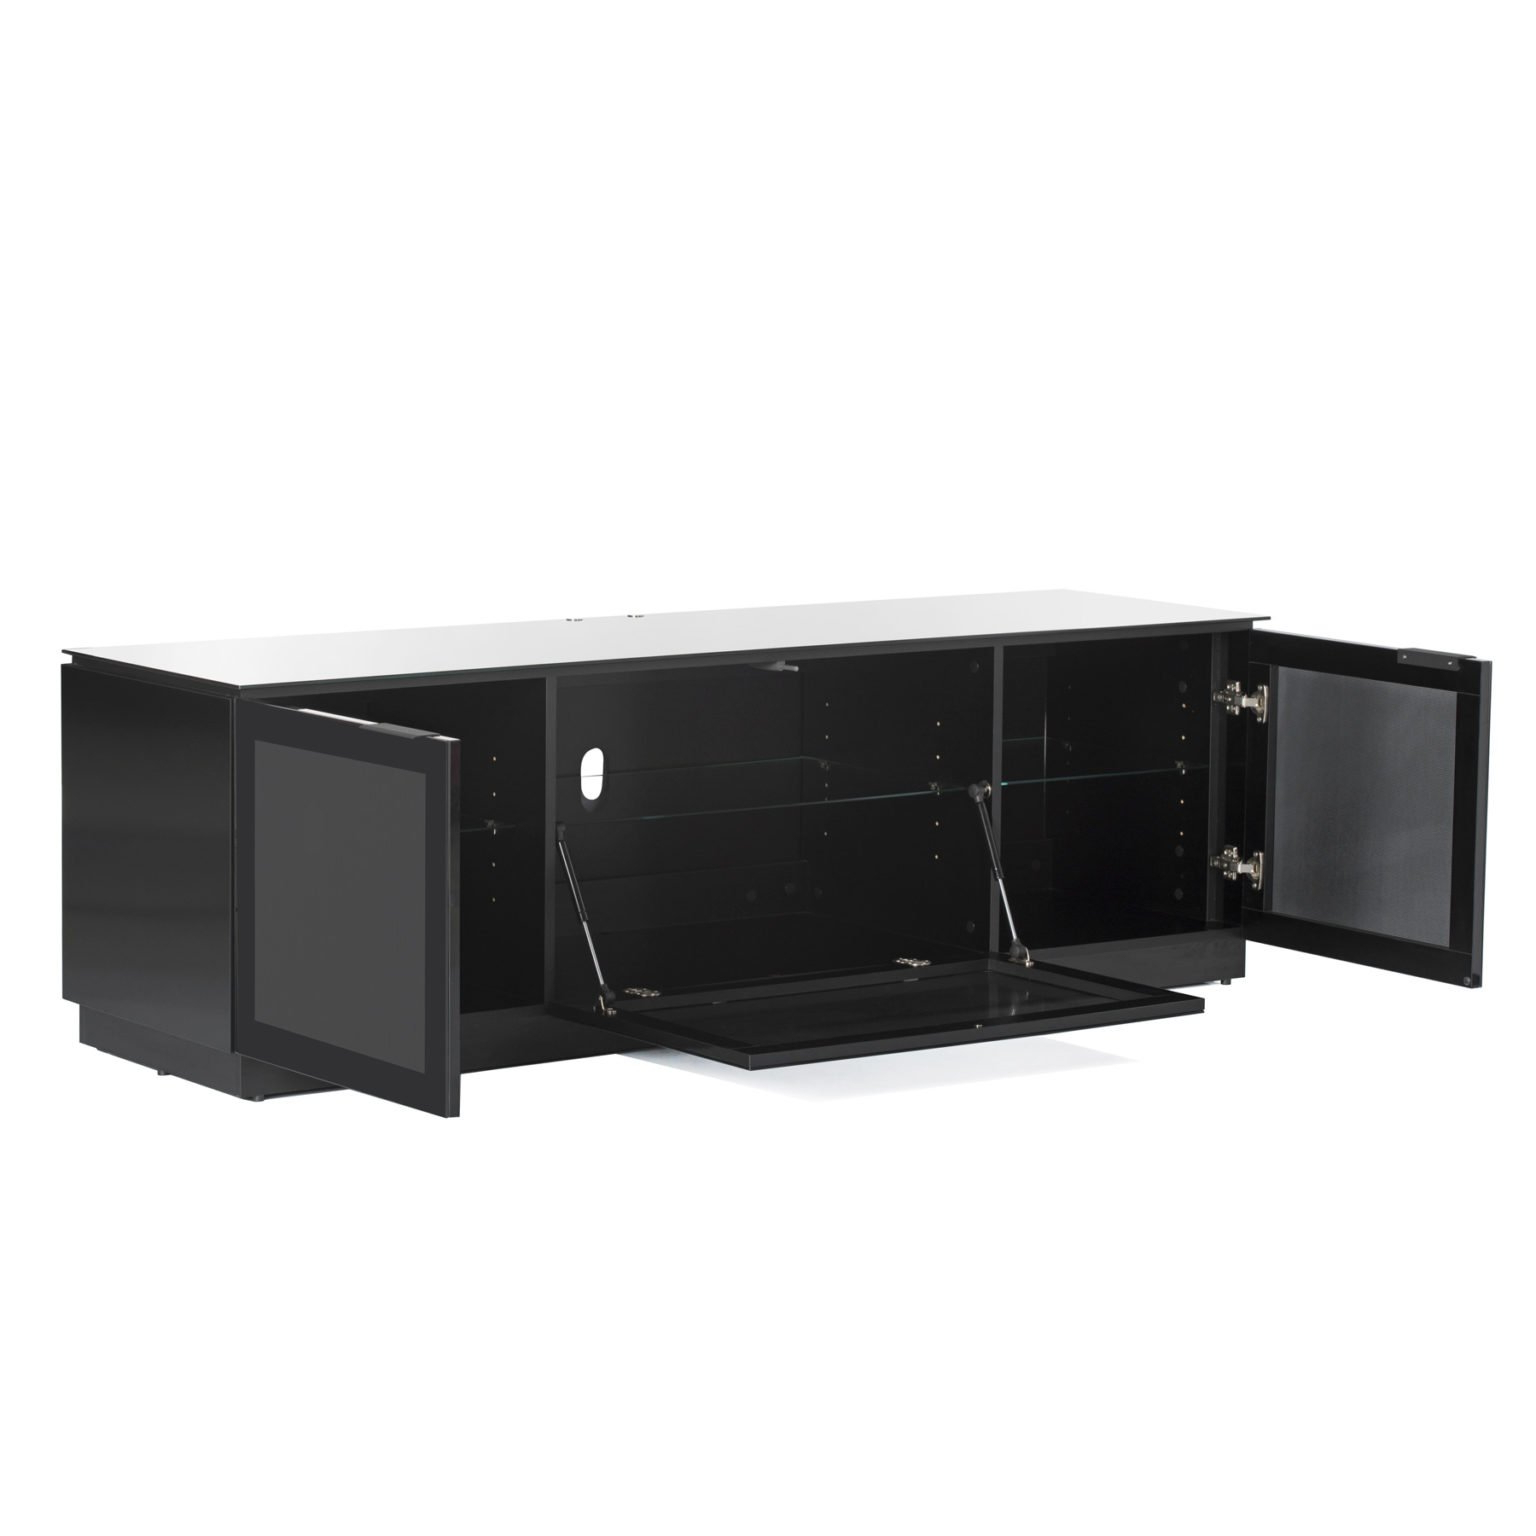 Black Gloss Tv Unit Up To 80 Inch Flat Screen Tv   Mmt D1800 Intended For Dillon Black Tv Unit Stands (View 16 of 20)